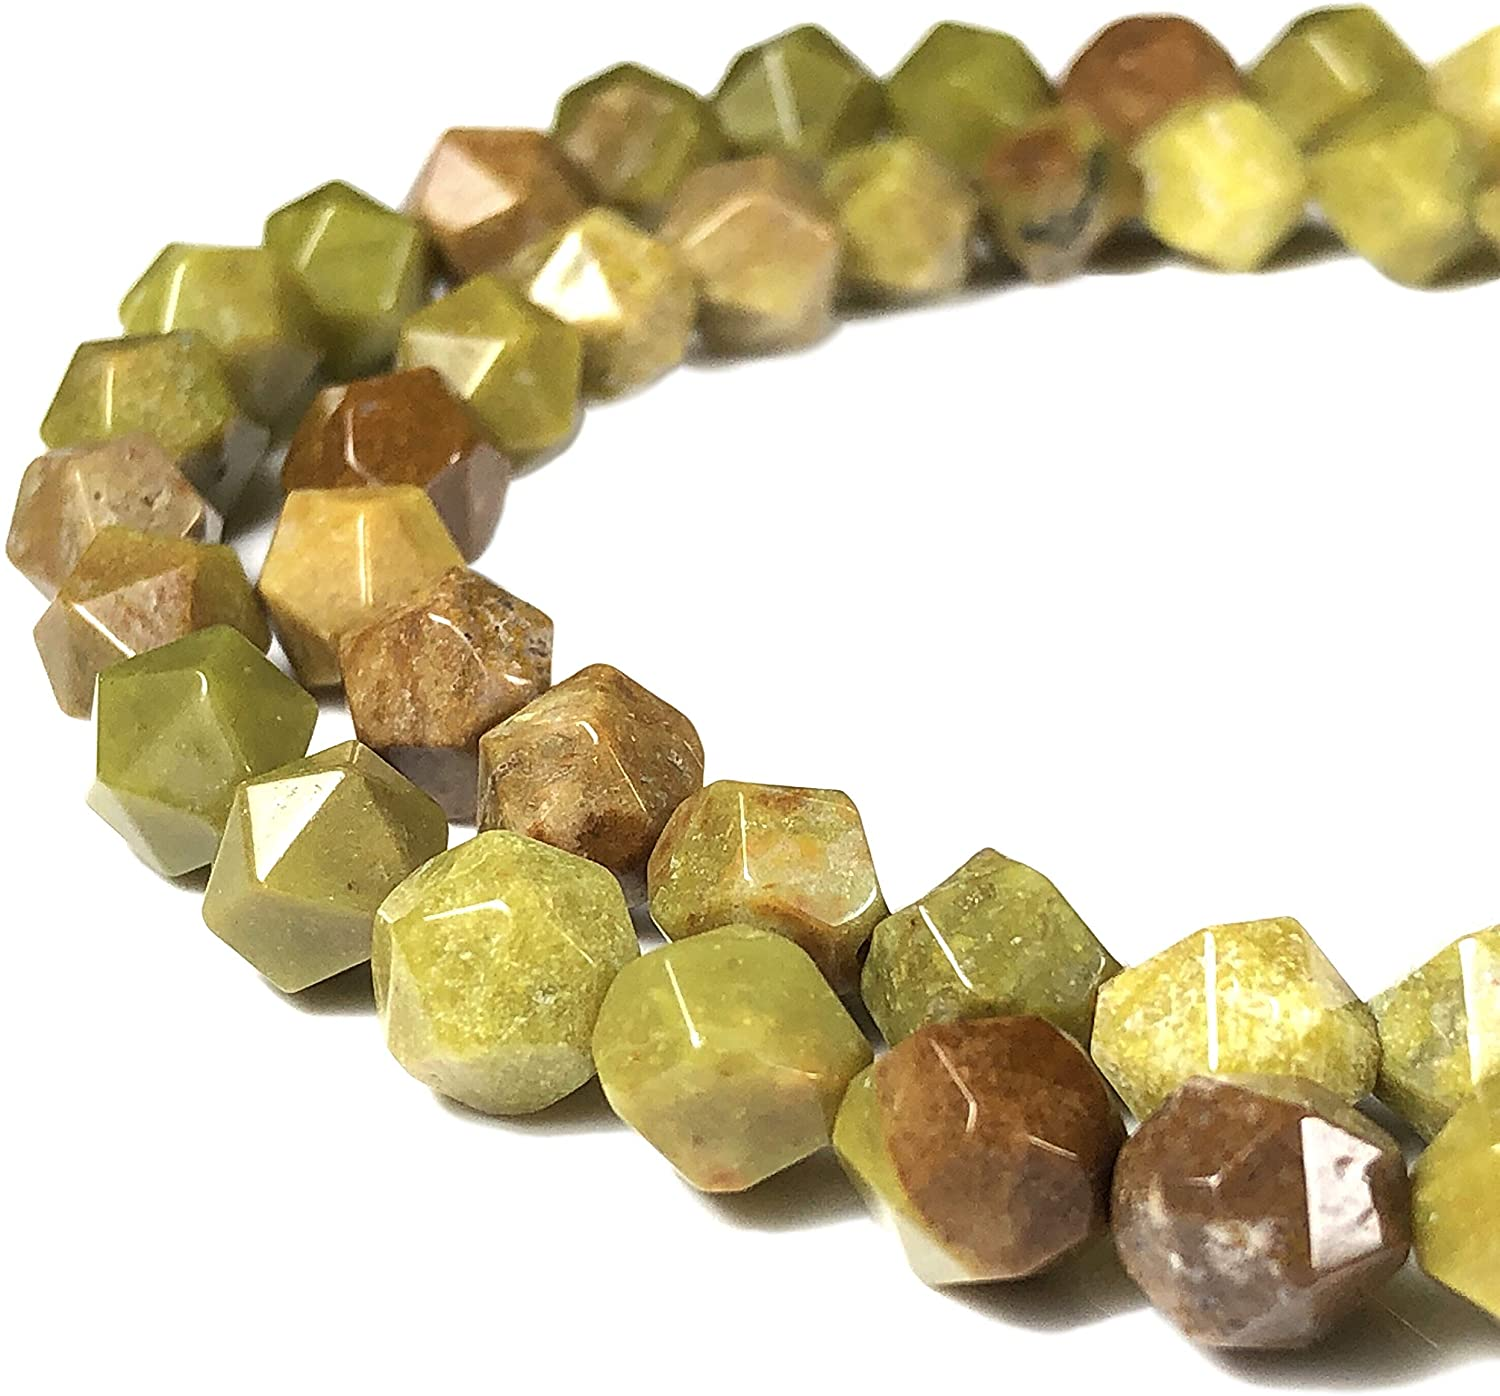 [ABCgems] Rare Australian Olive Opal 8mm Precision-Star-Cut Beads for Beading & Jewelry Making